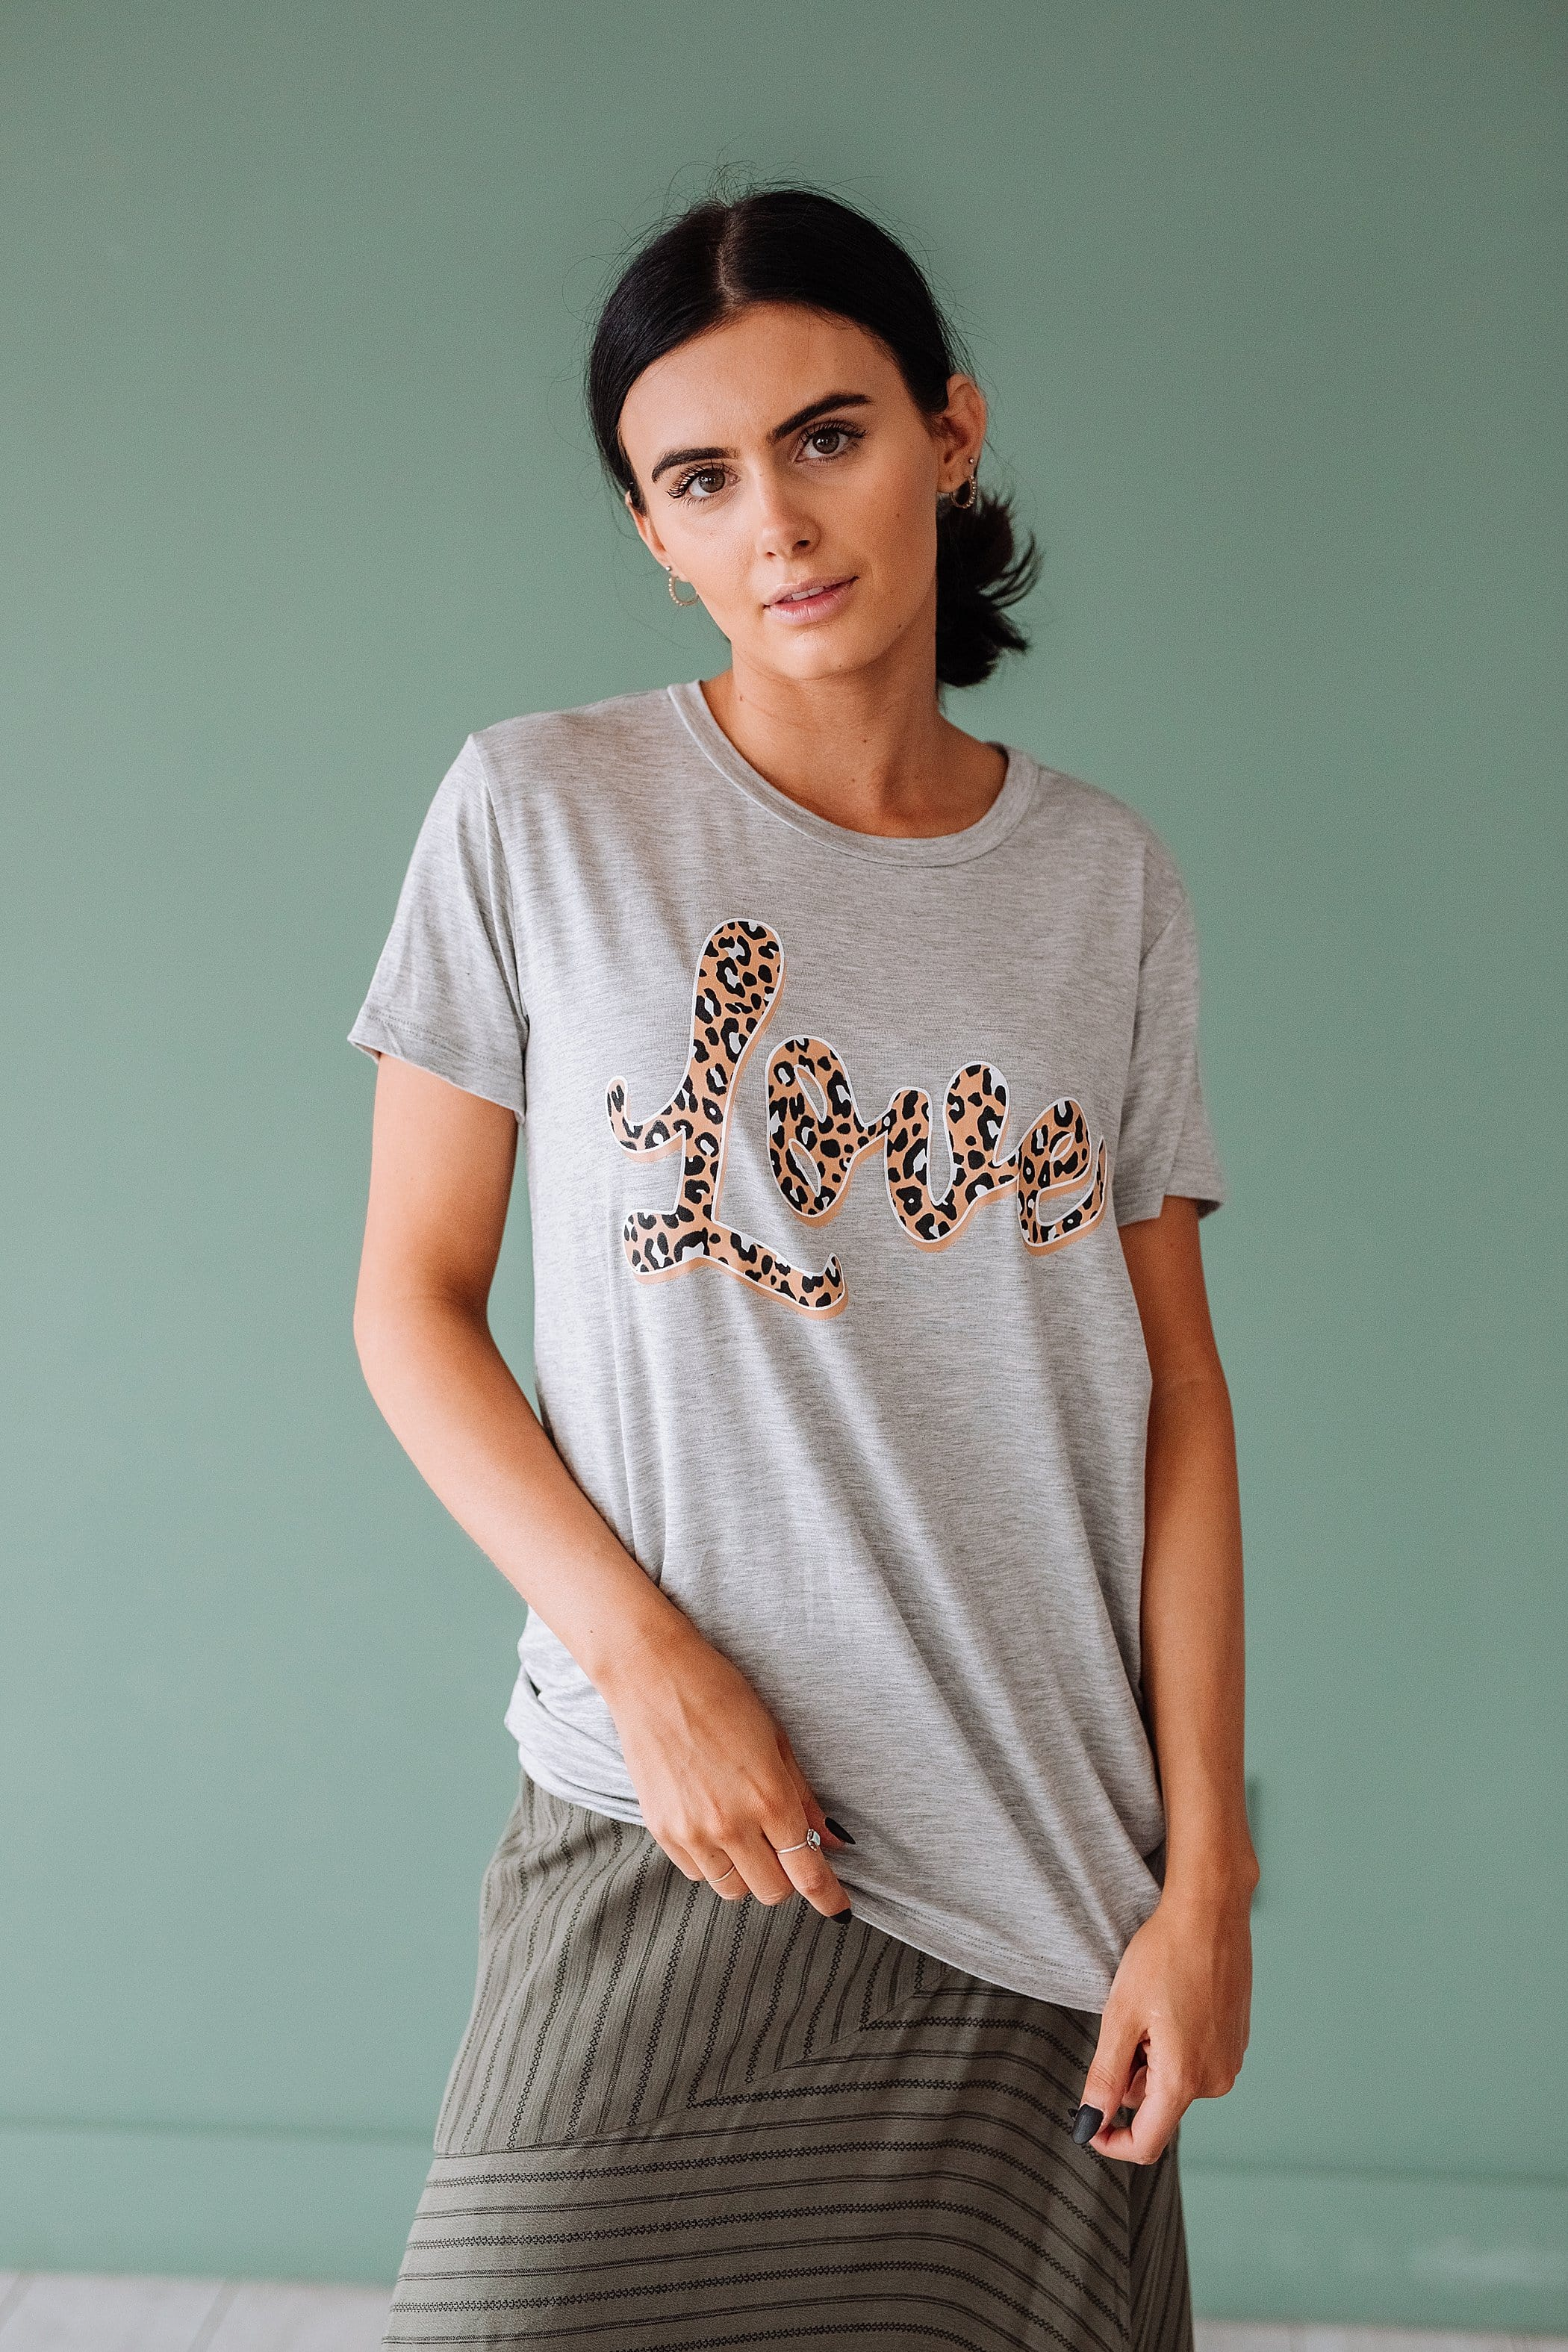 The Leopard Love Graphic Top in Heather Grey